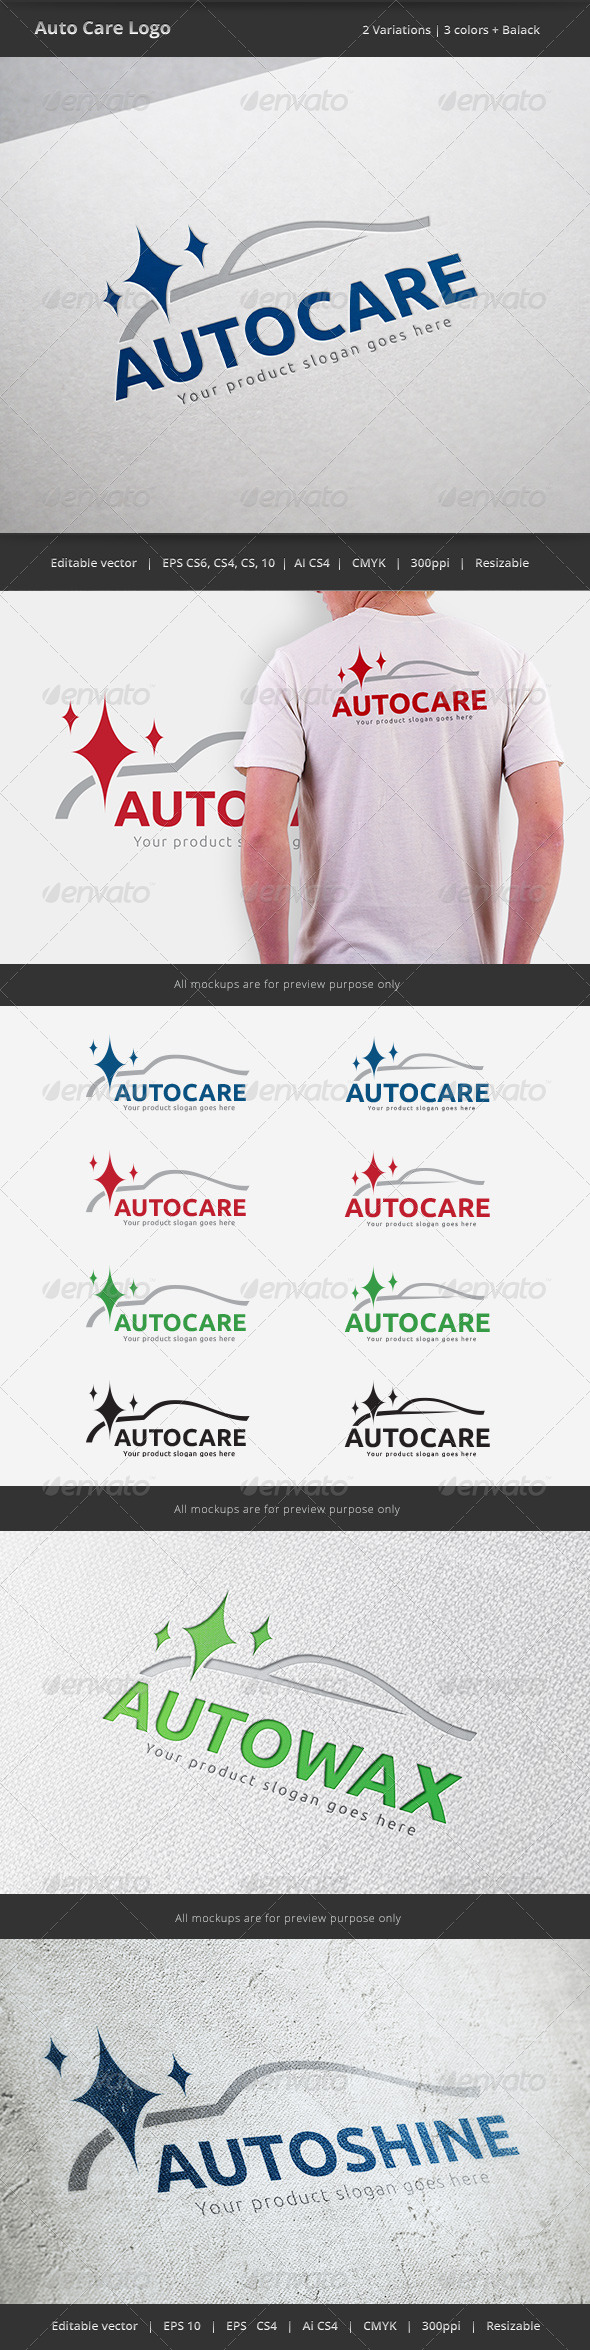 Auto Car Care Logo